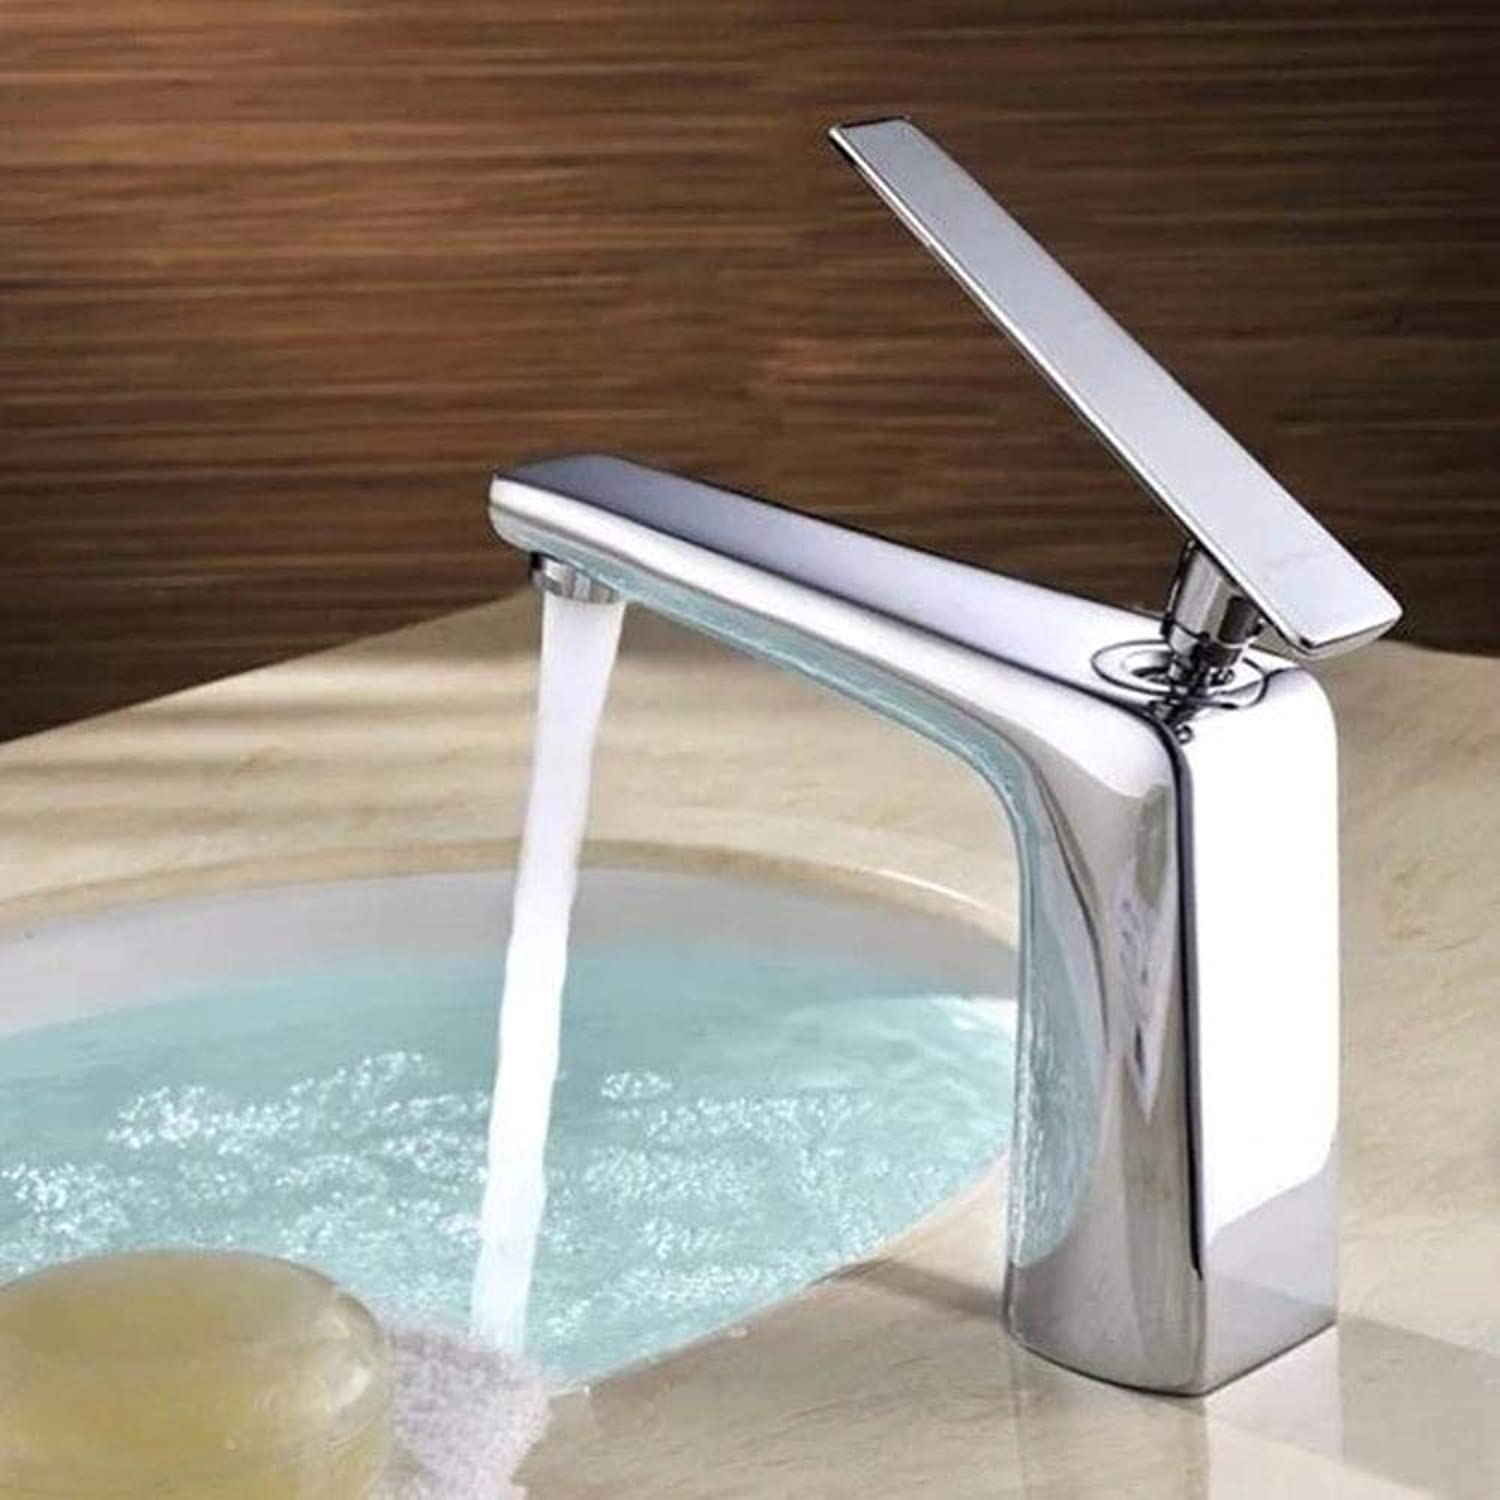 Wy Kitchen Taps Copper Basin hot and Cold Platform Basin Heightening Single Hole Water Bridle